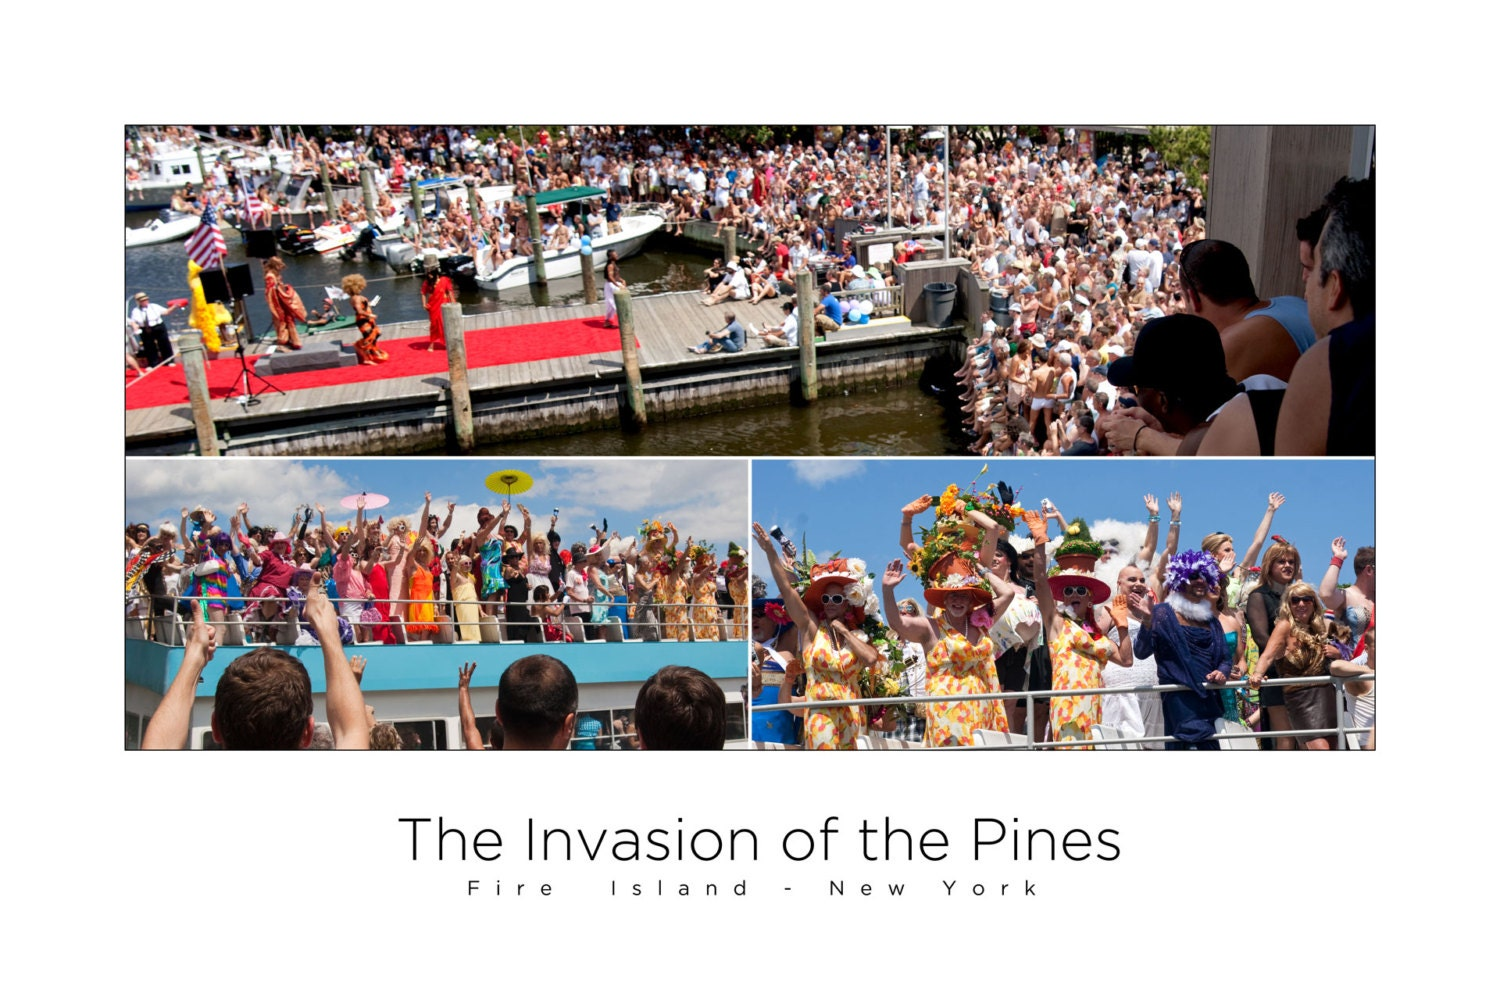 Fire Island Pines Poster - The Invasion of the Pines